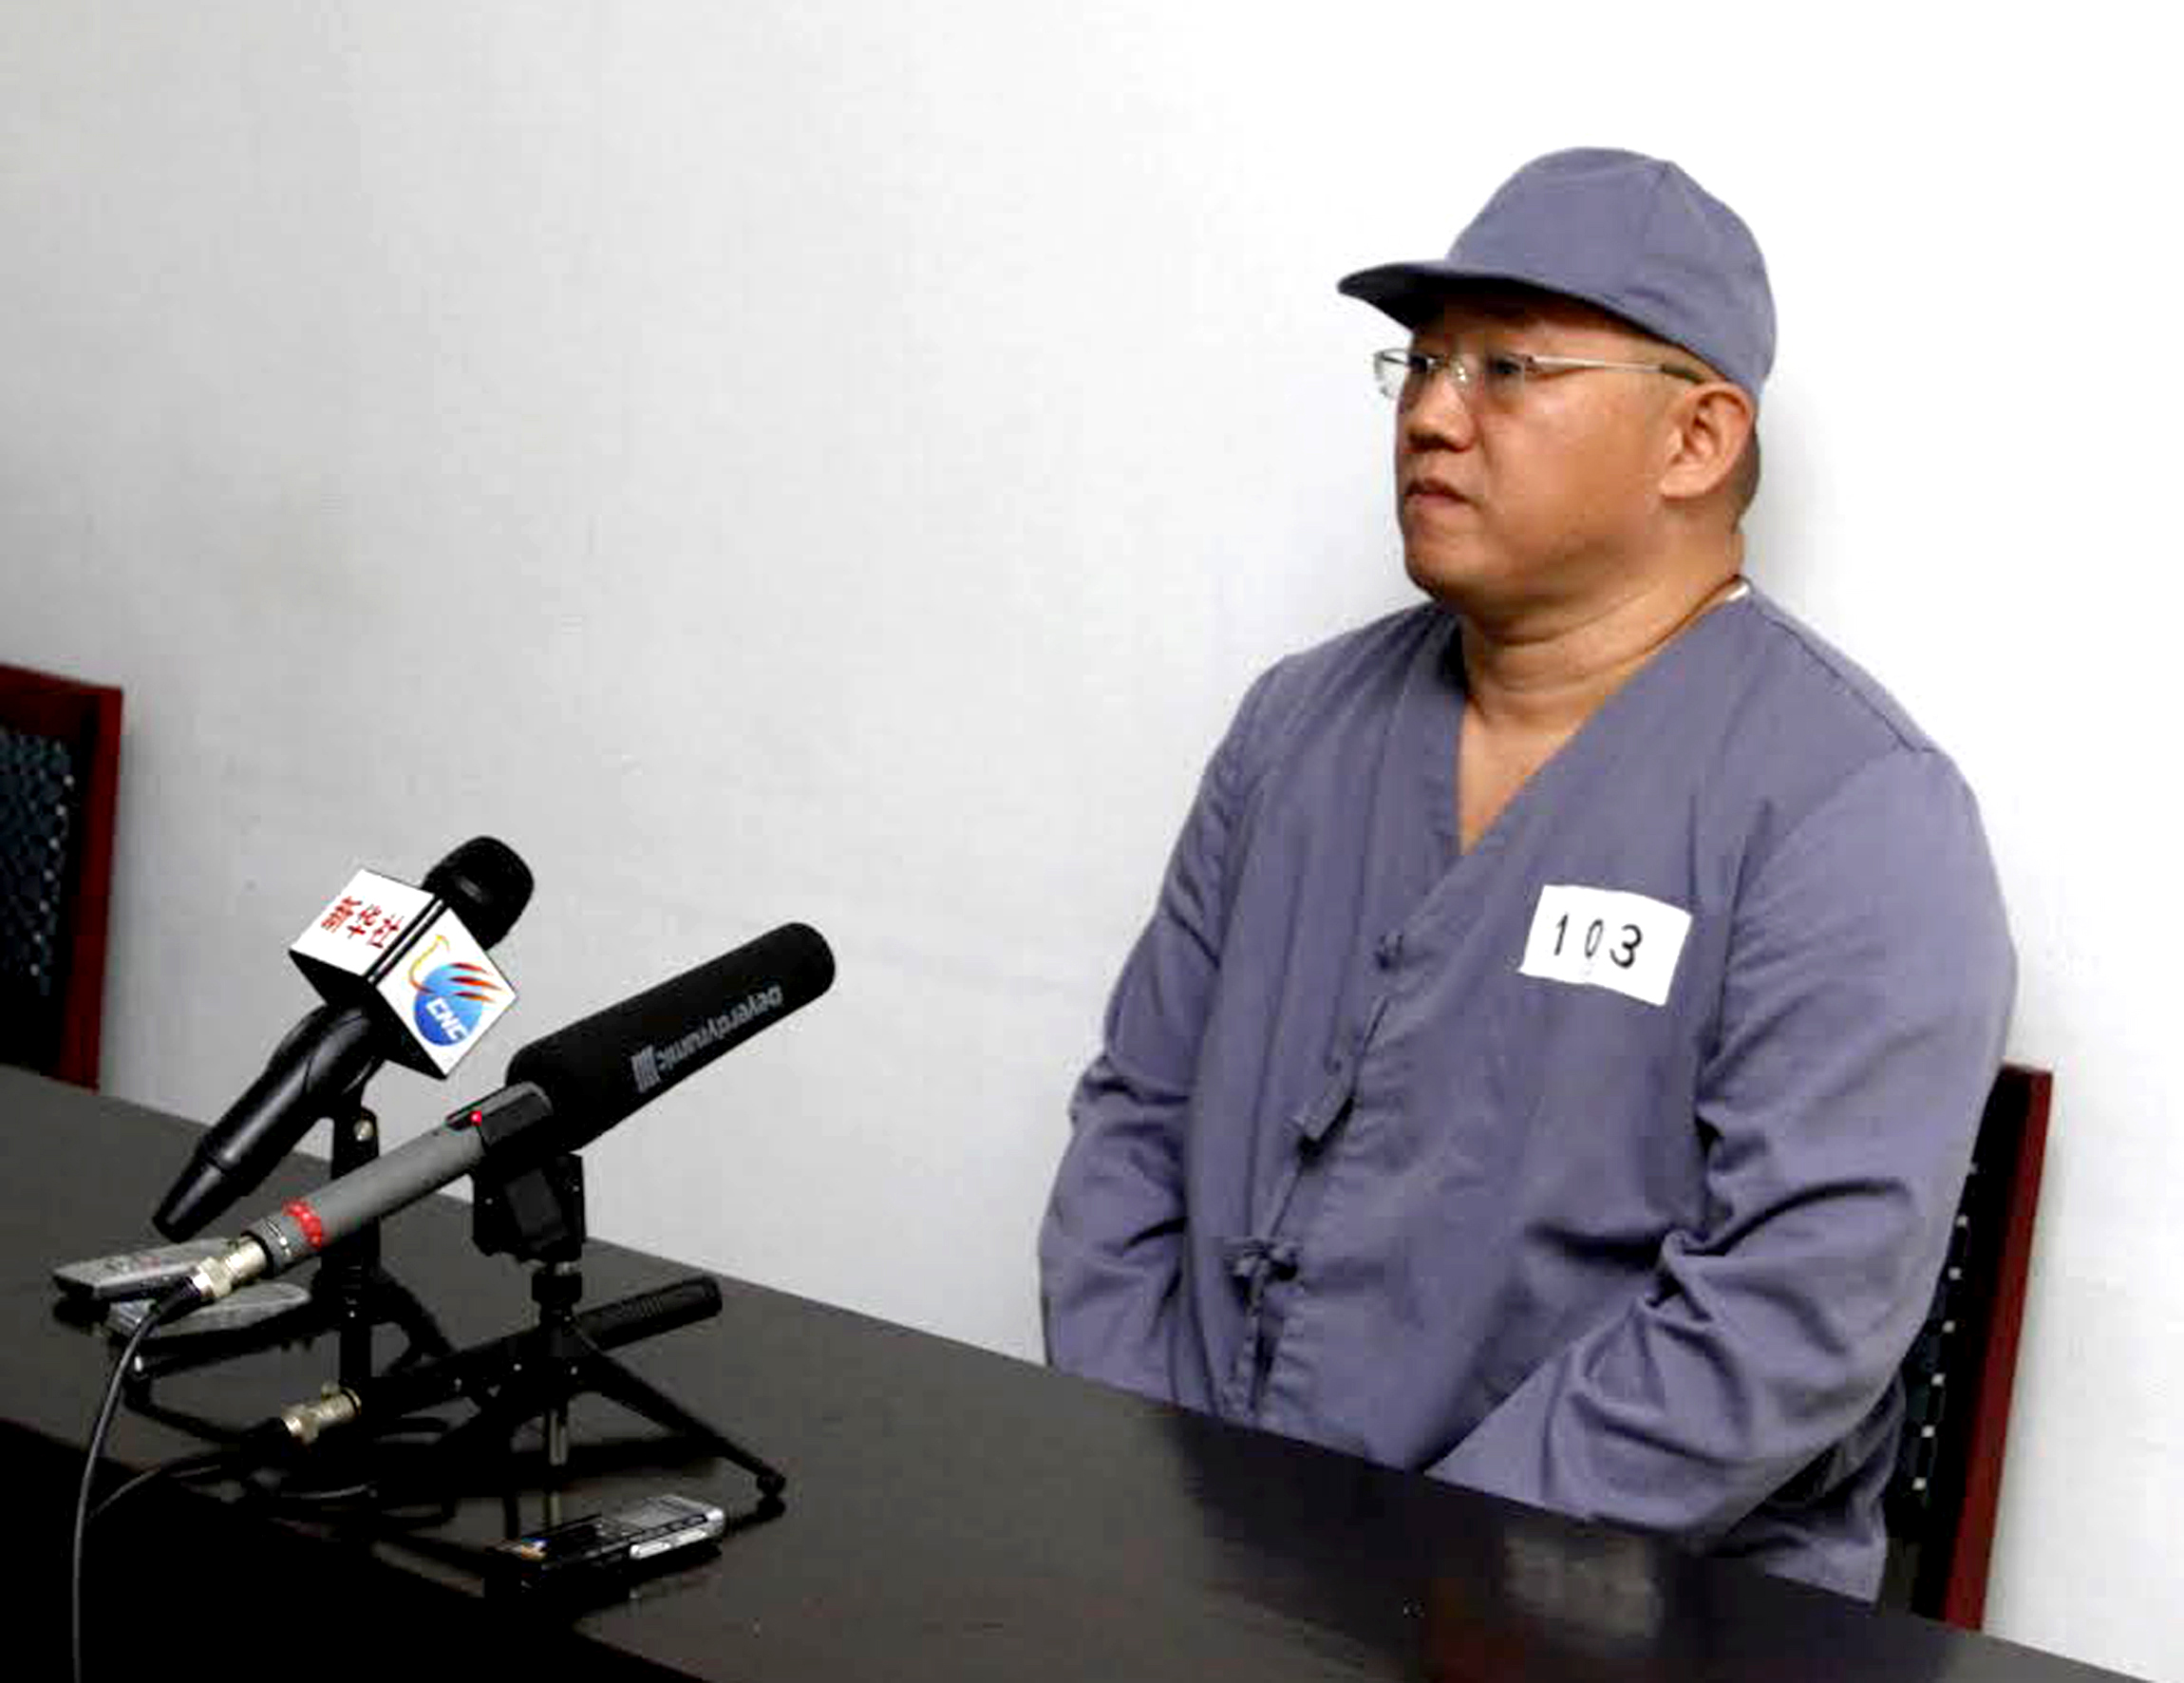 AP north korea american missionary sk 140120 North Korea Sent Kenneth Bae to Labor Camp to Protest B 52 Flights